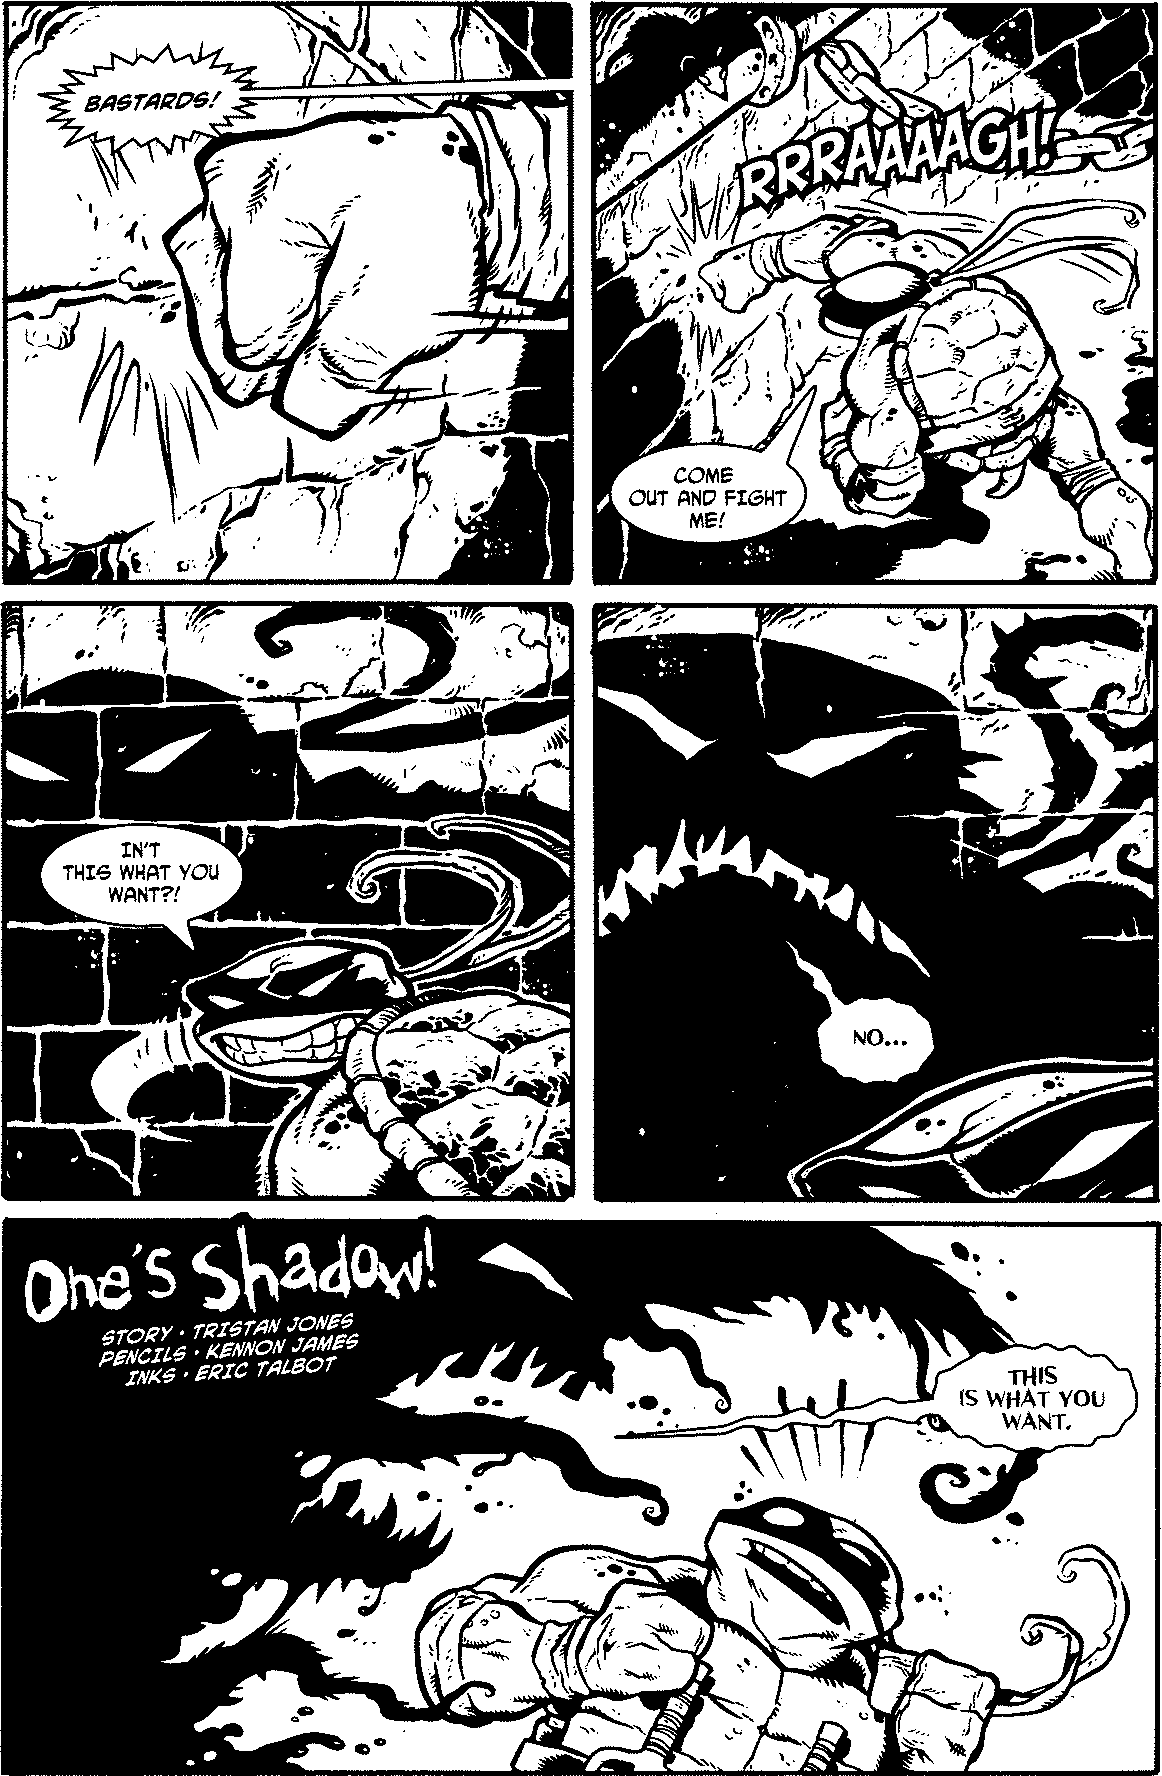 One's Shadow!